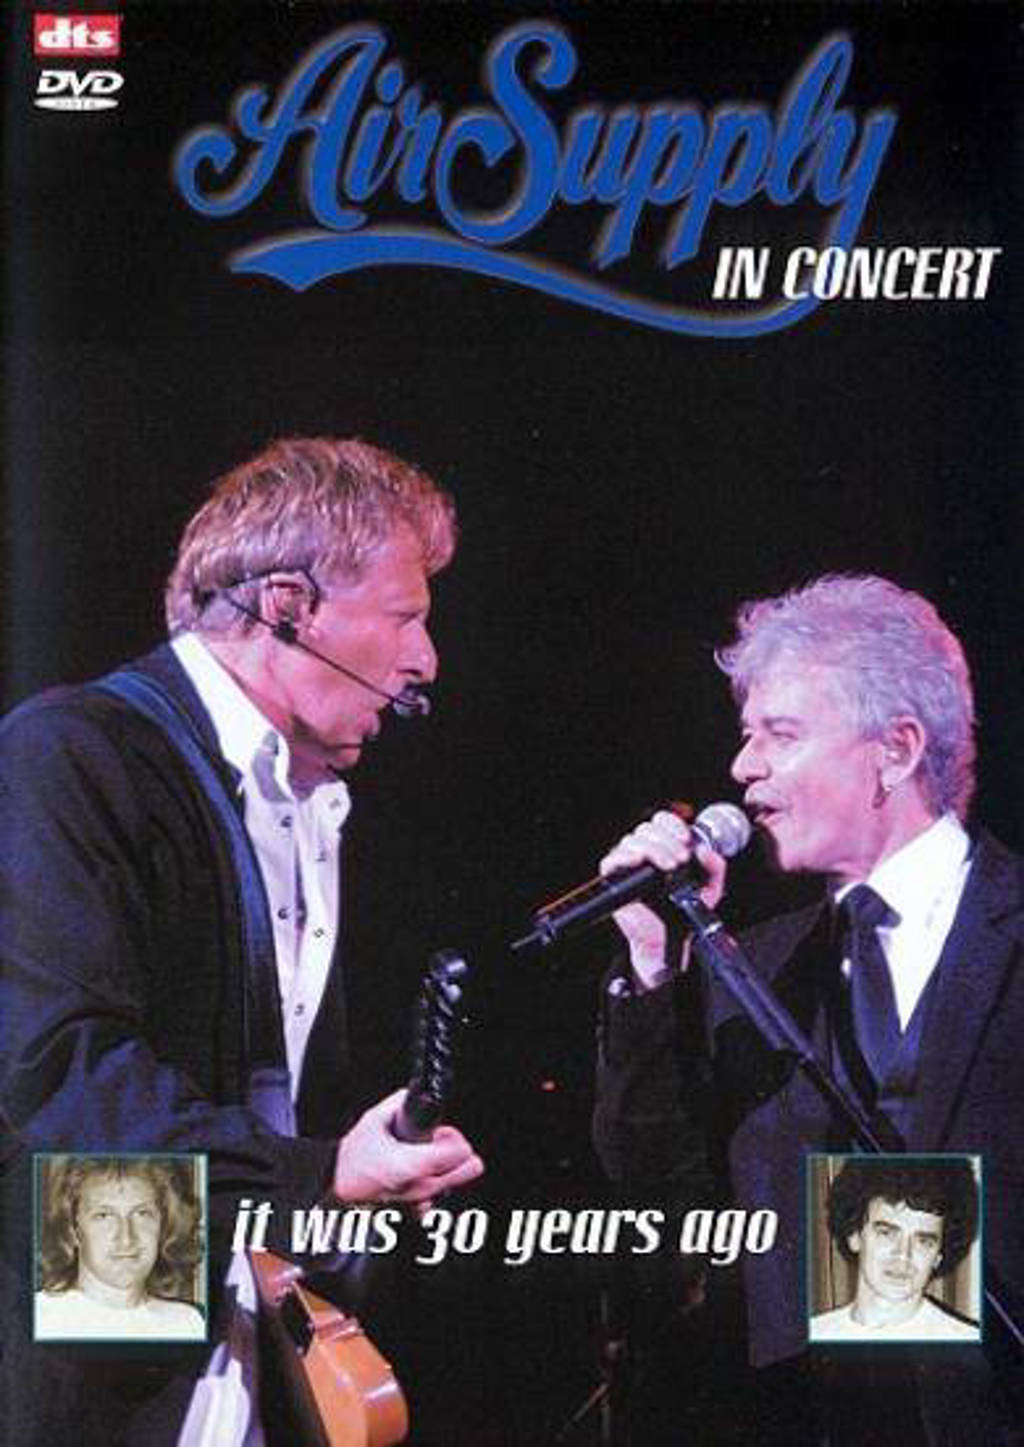 Air supply - in concert (DVD)